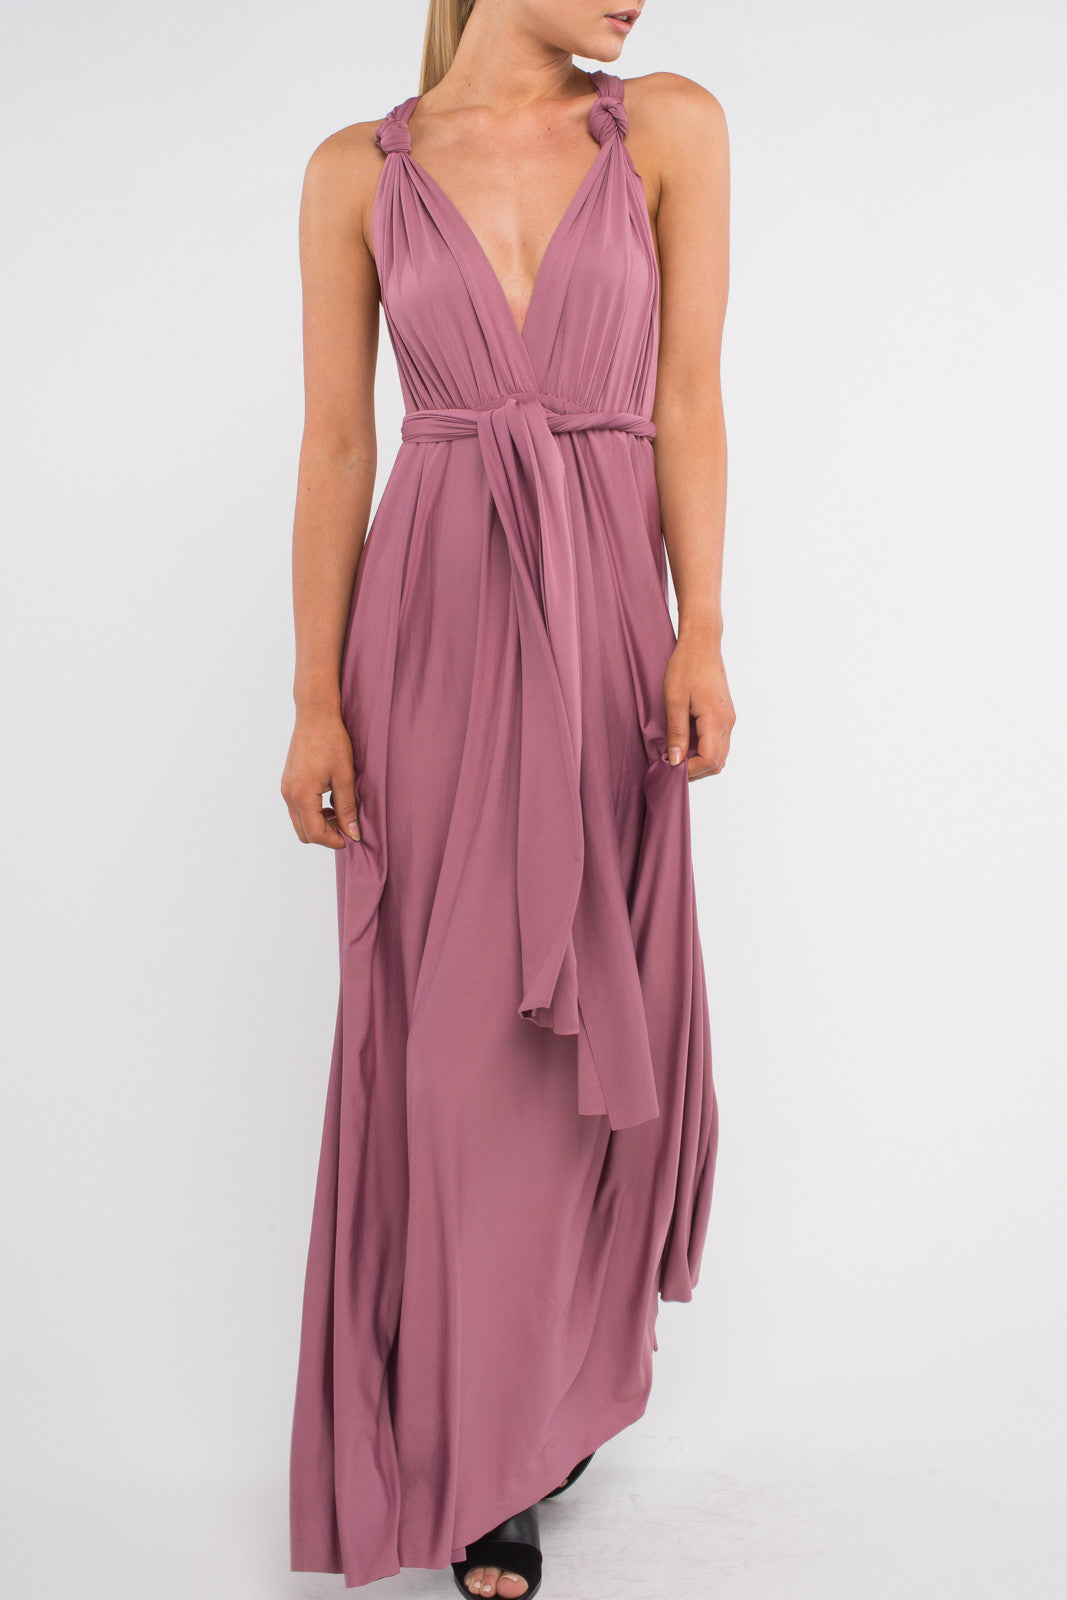 Make it your way Maxi Nude